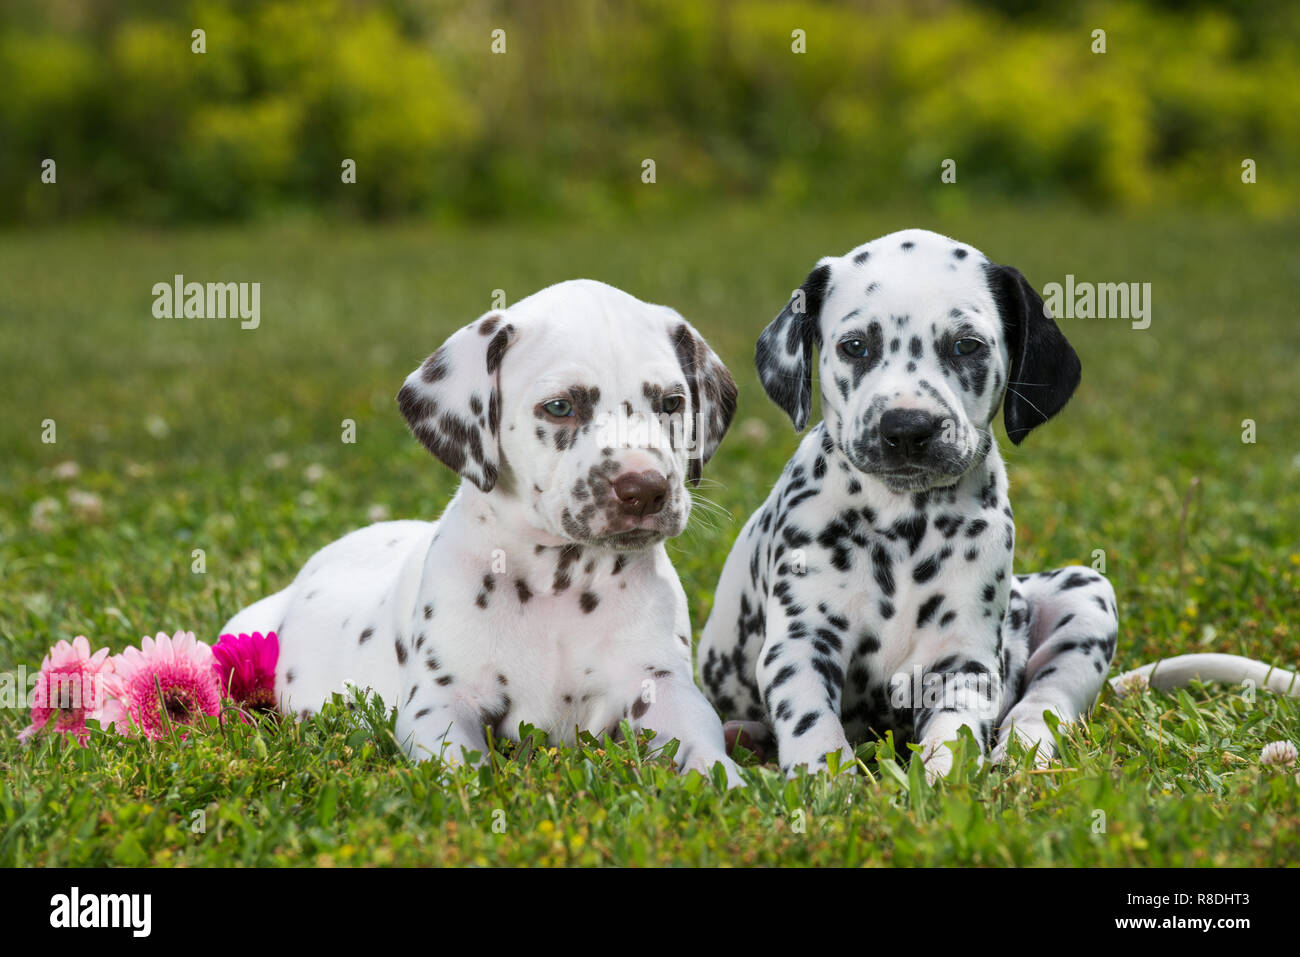 Dalmatian puppies lying on a meadow - Stock Image